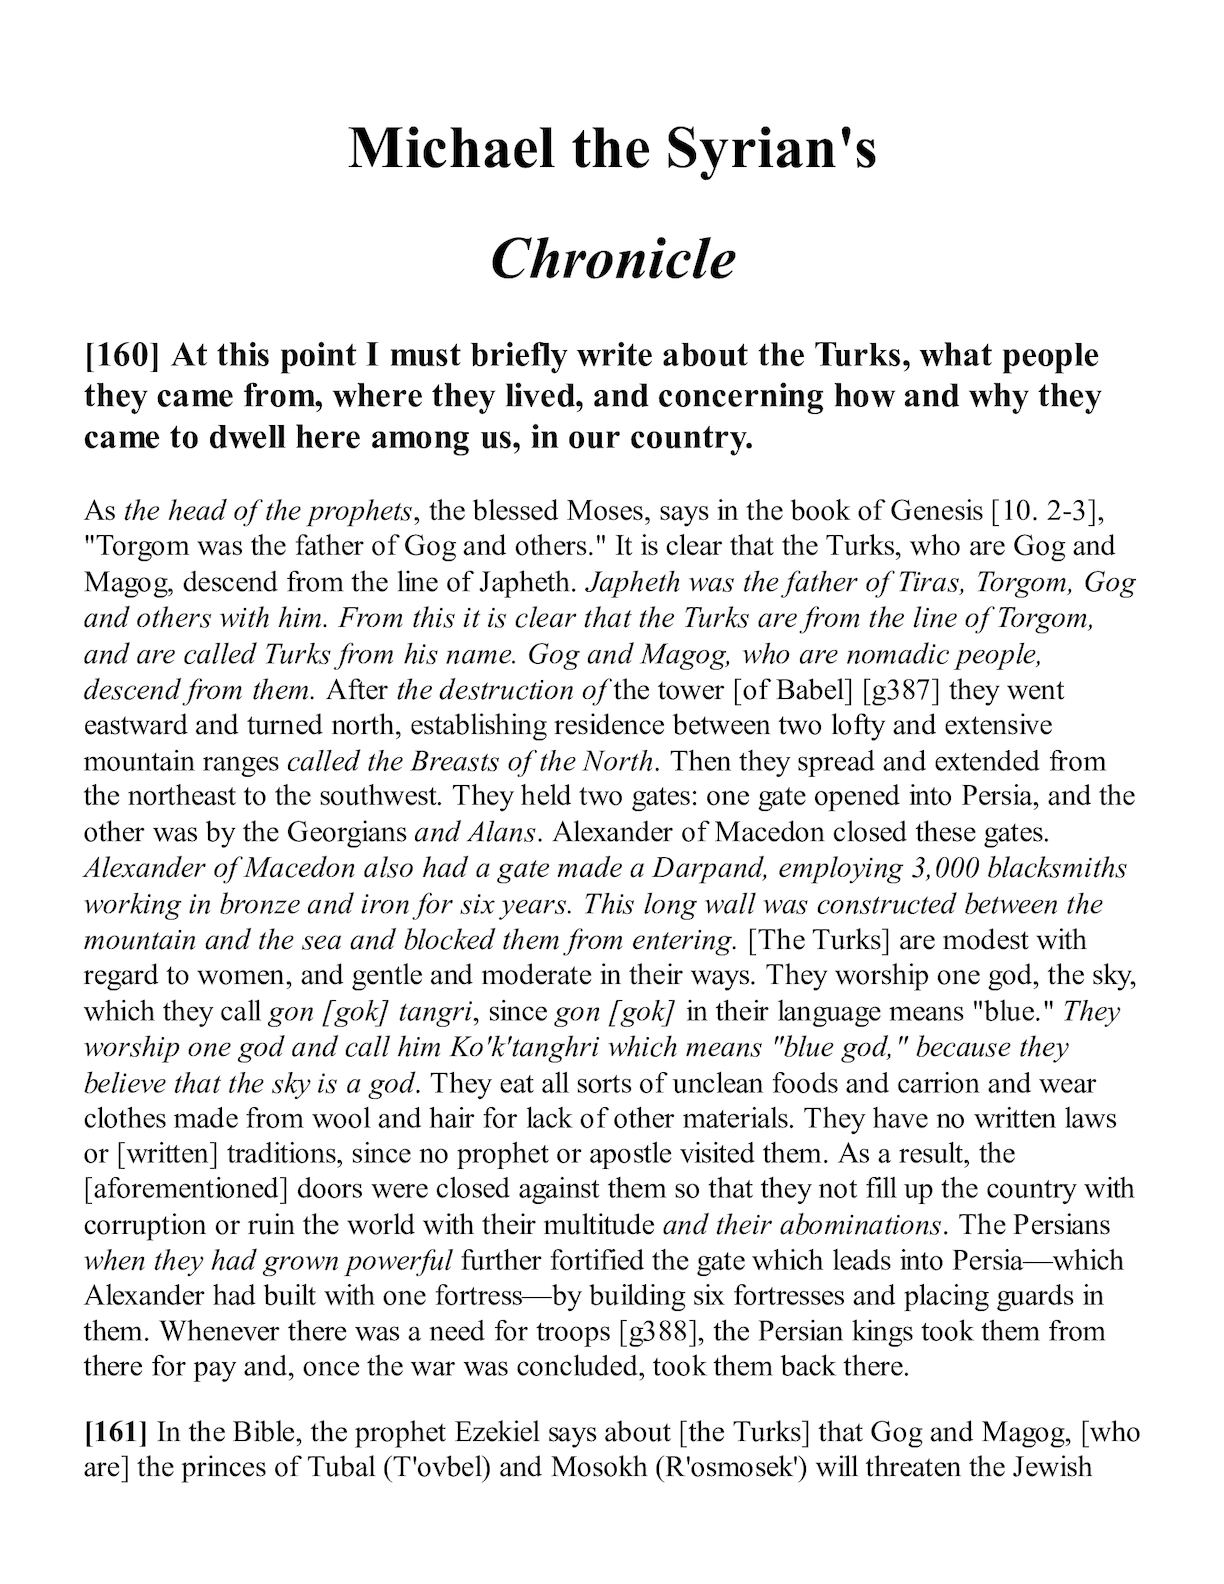 Chronicle of Michael the Great (Syrian) about the Magi of the Nativity 57